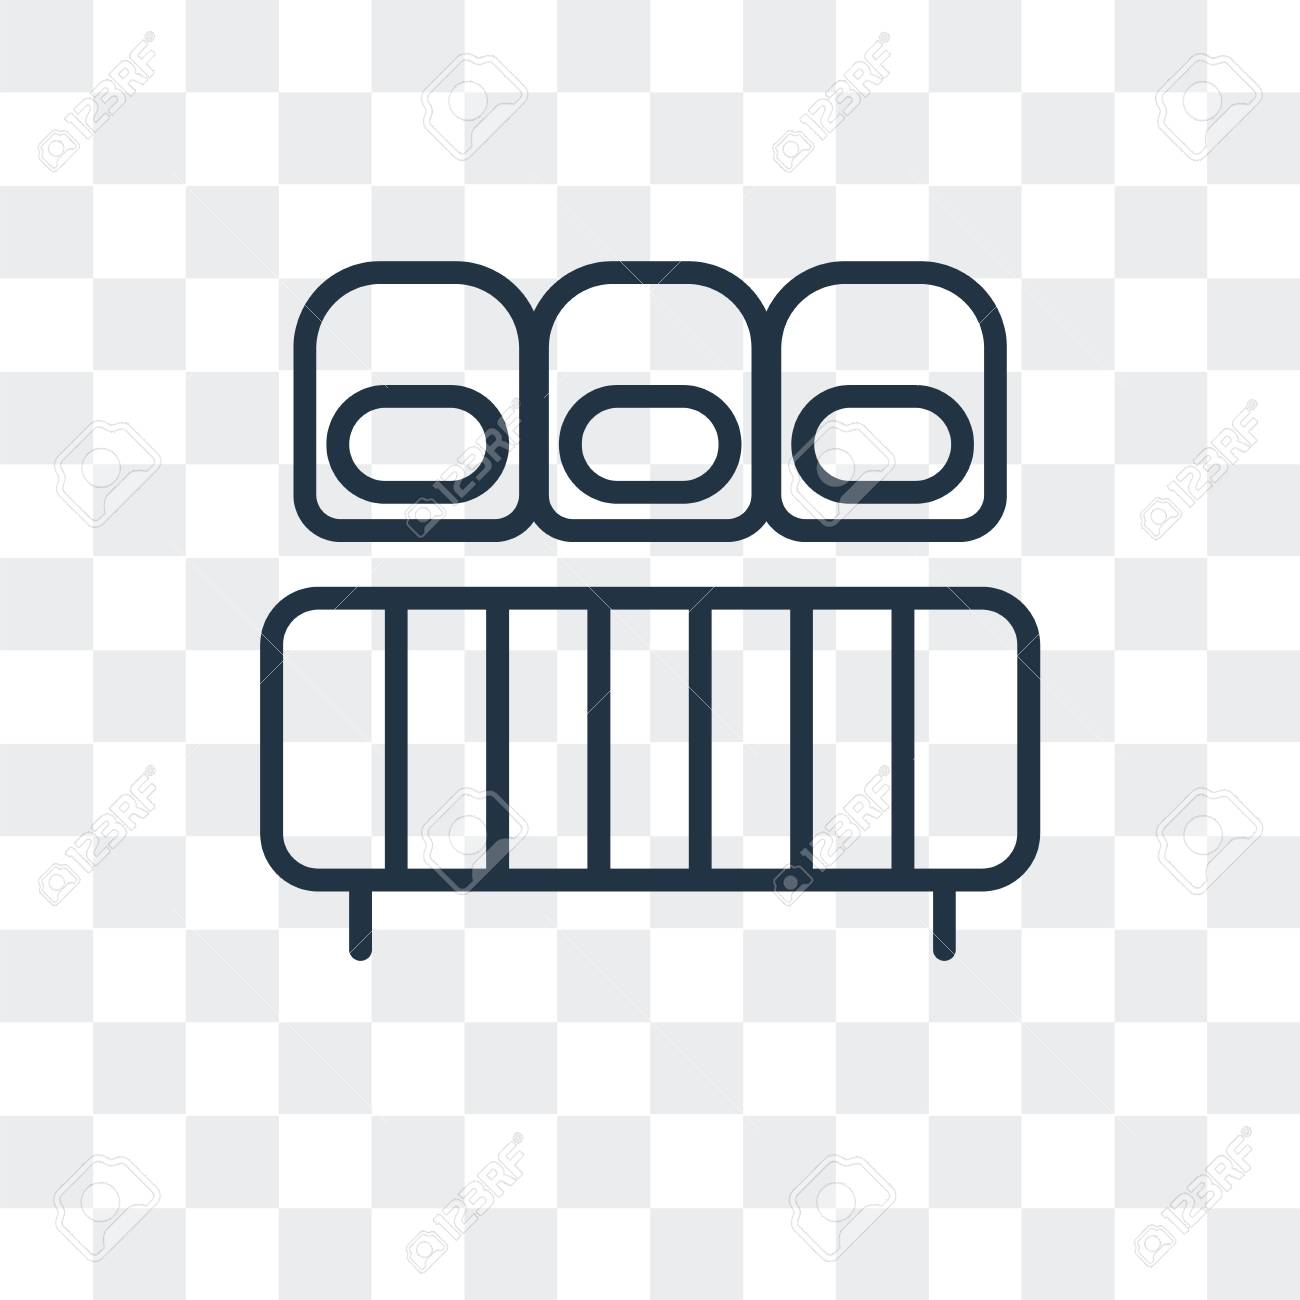 Mattress Vector Icon Isolated On Transparent Background Mattress Royalty Free Cliparts Vectors And Stock Illustration Image 107211664